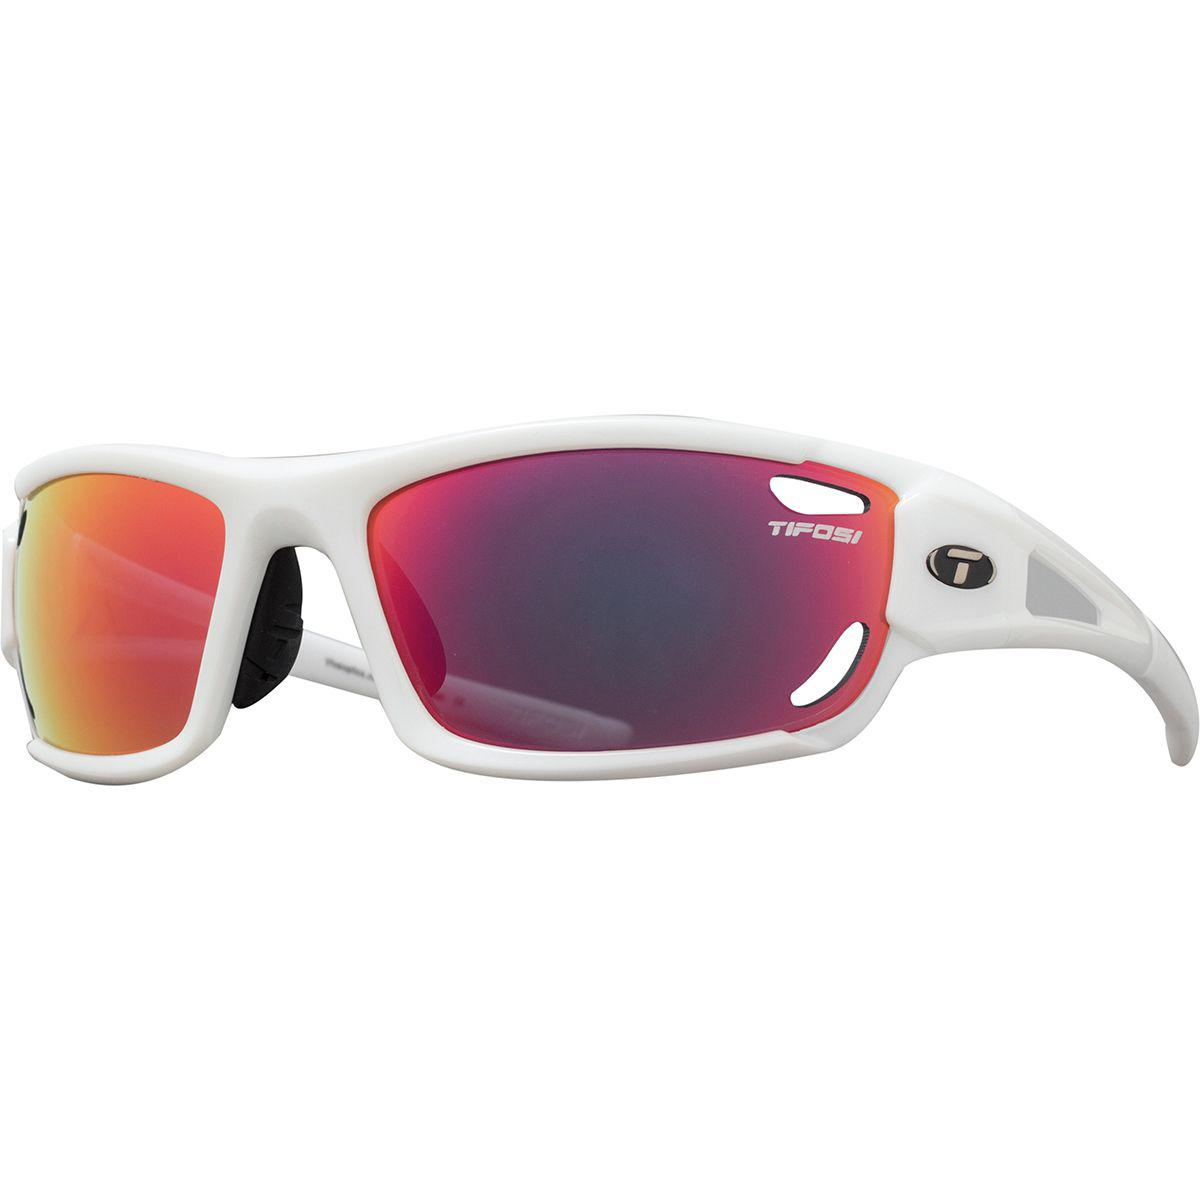 3f4766ffb7 Lyst - Tifosi Optics Dolomite 2.0 Sunglasses in Red for Men